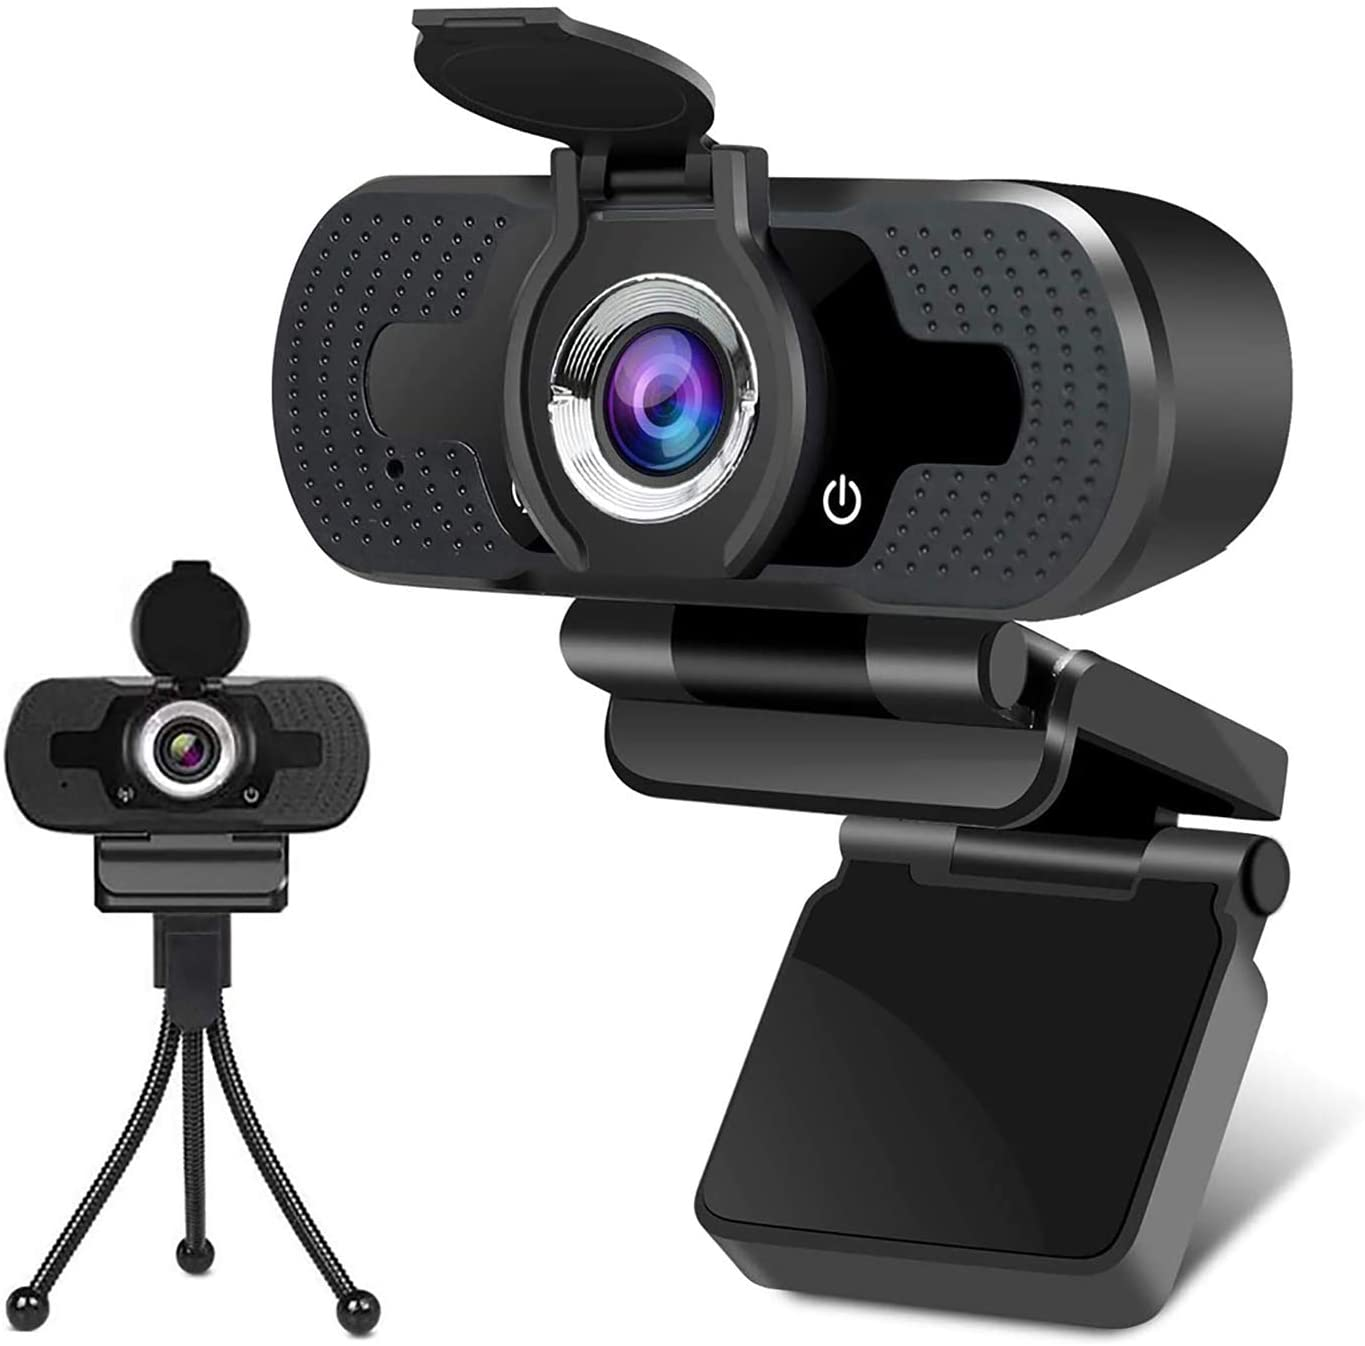 1080P Webcam for PC Laptop Desktop, Streaming Webcam with Microphone, Computer Video Camera Skype Webcam Compatible with Windows Mac Android Chrome Linux